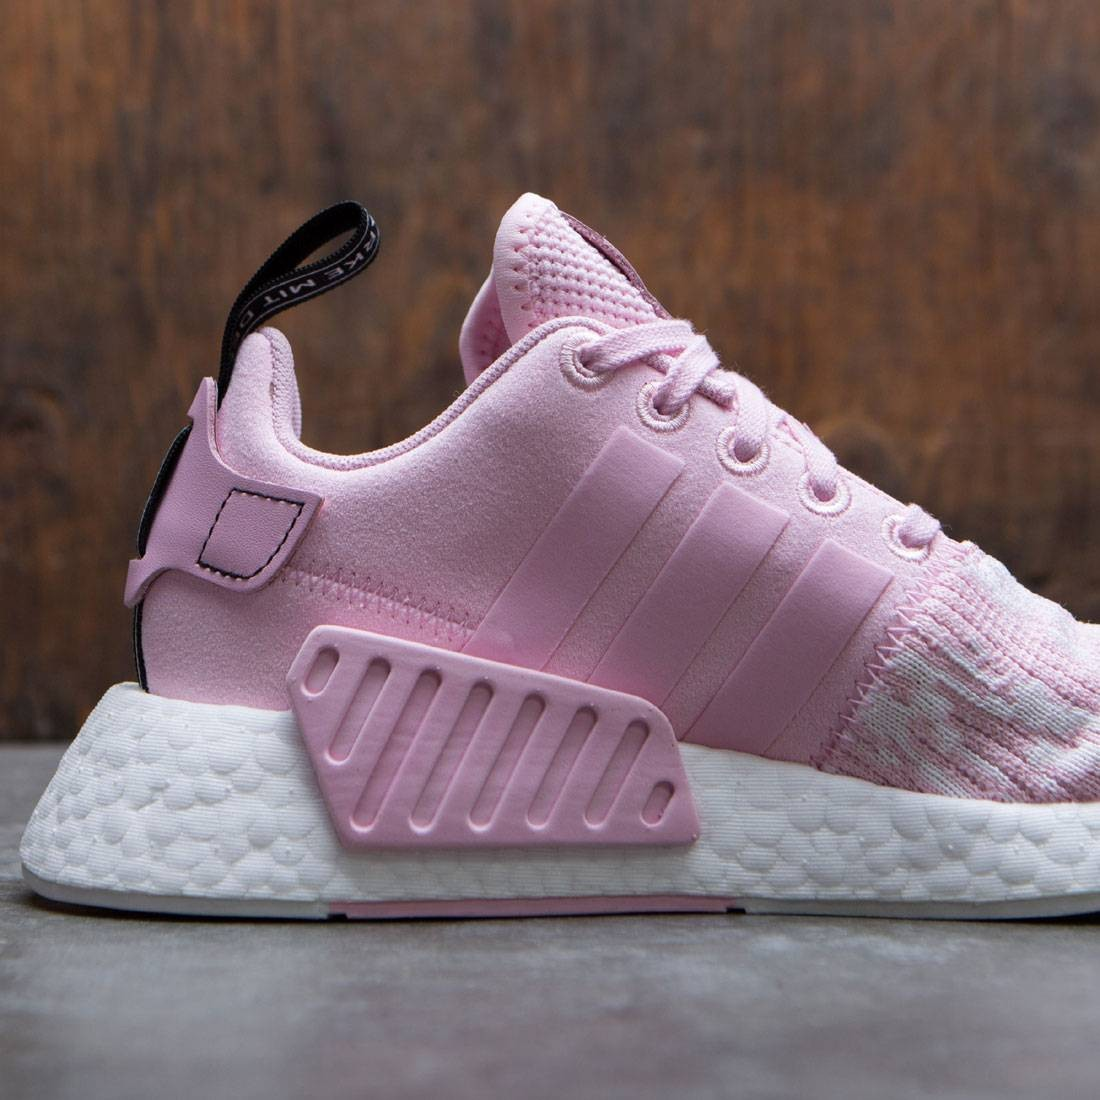 Mejor Adidas NMD R2 W mujeres Core Negro Rosa